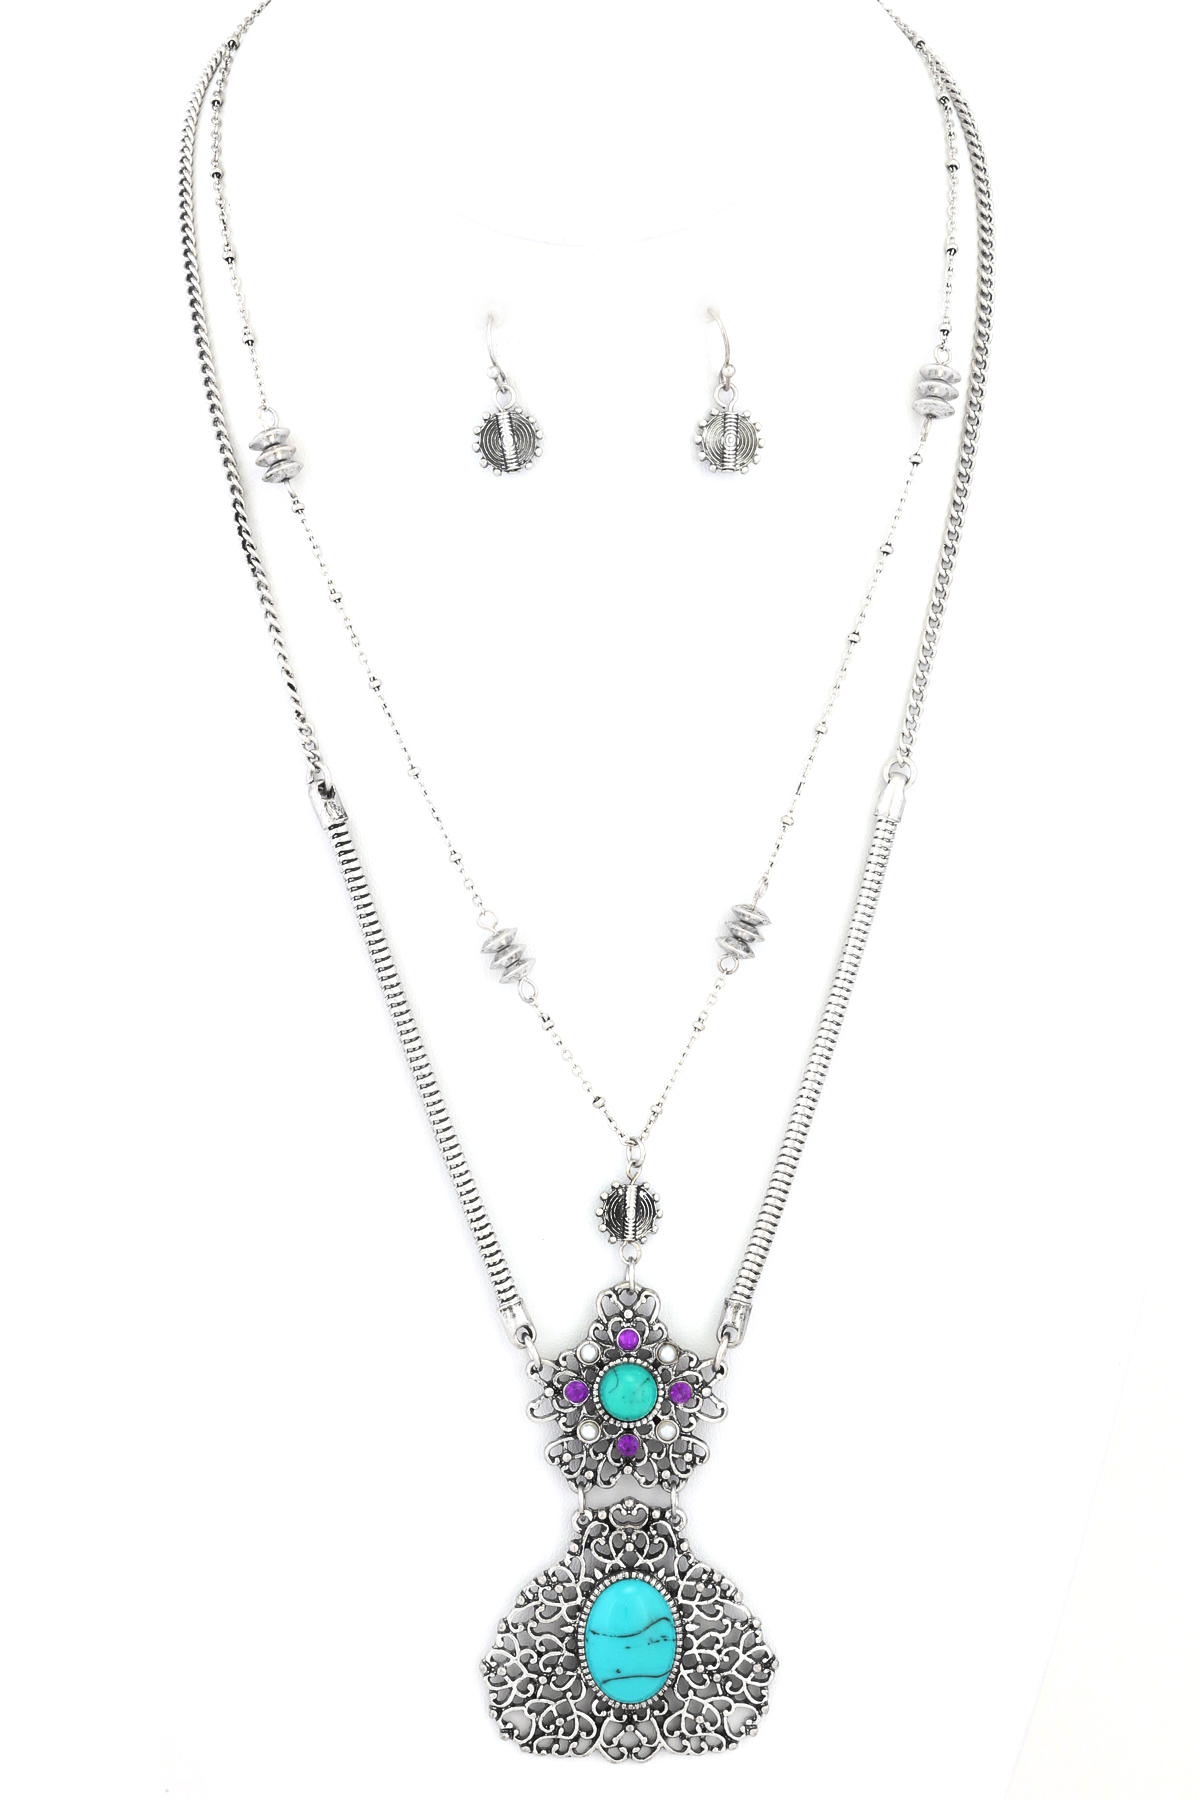 Double Layered Filigree Necklace Set